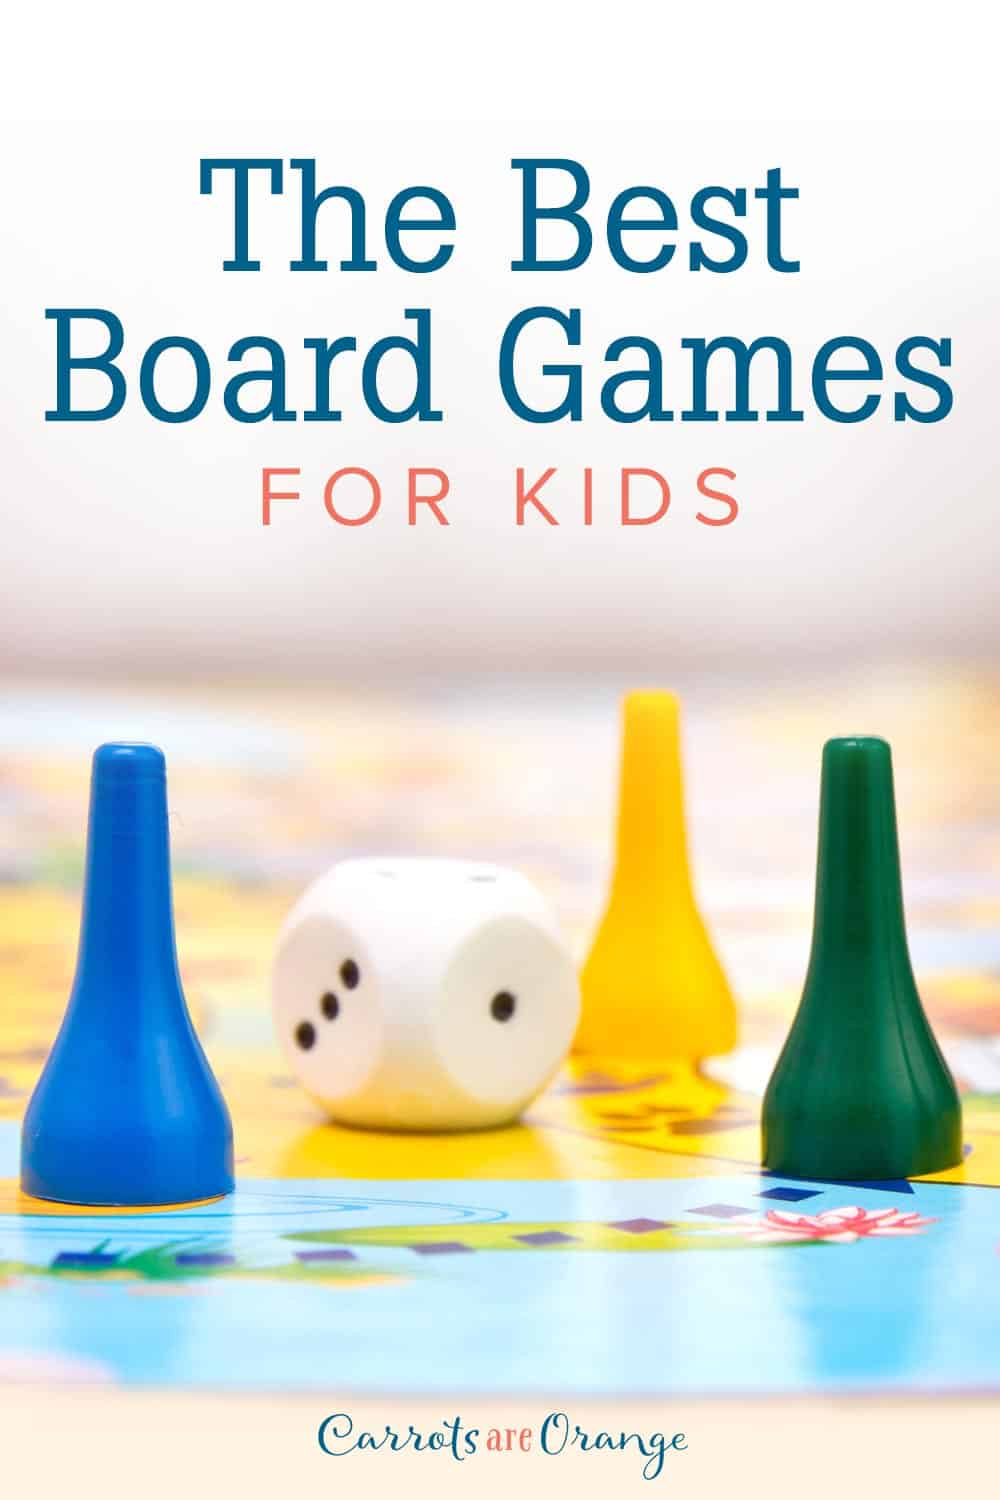 The best board games for kids